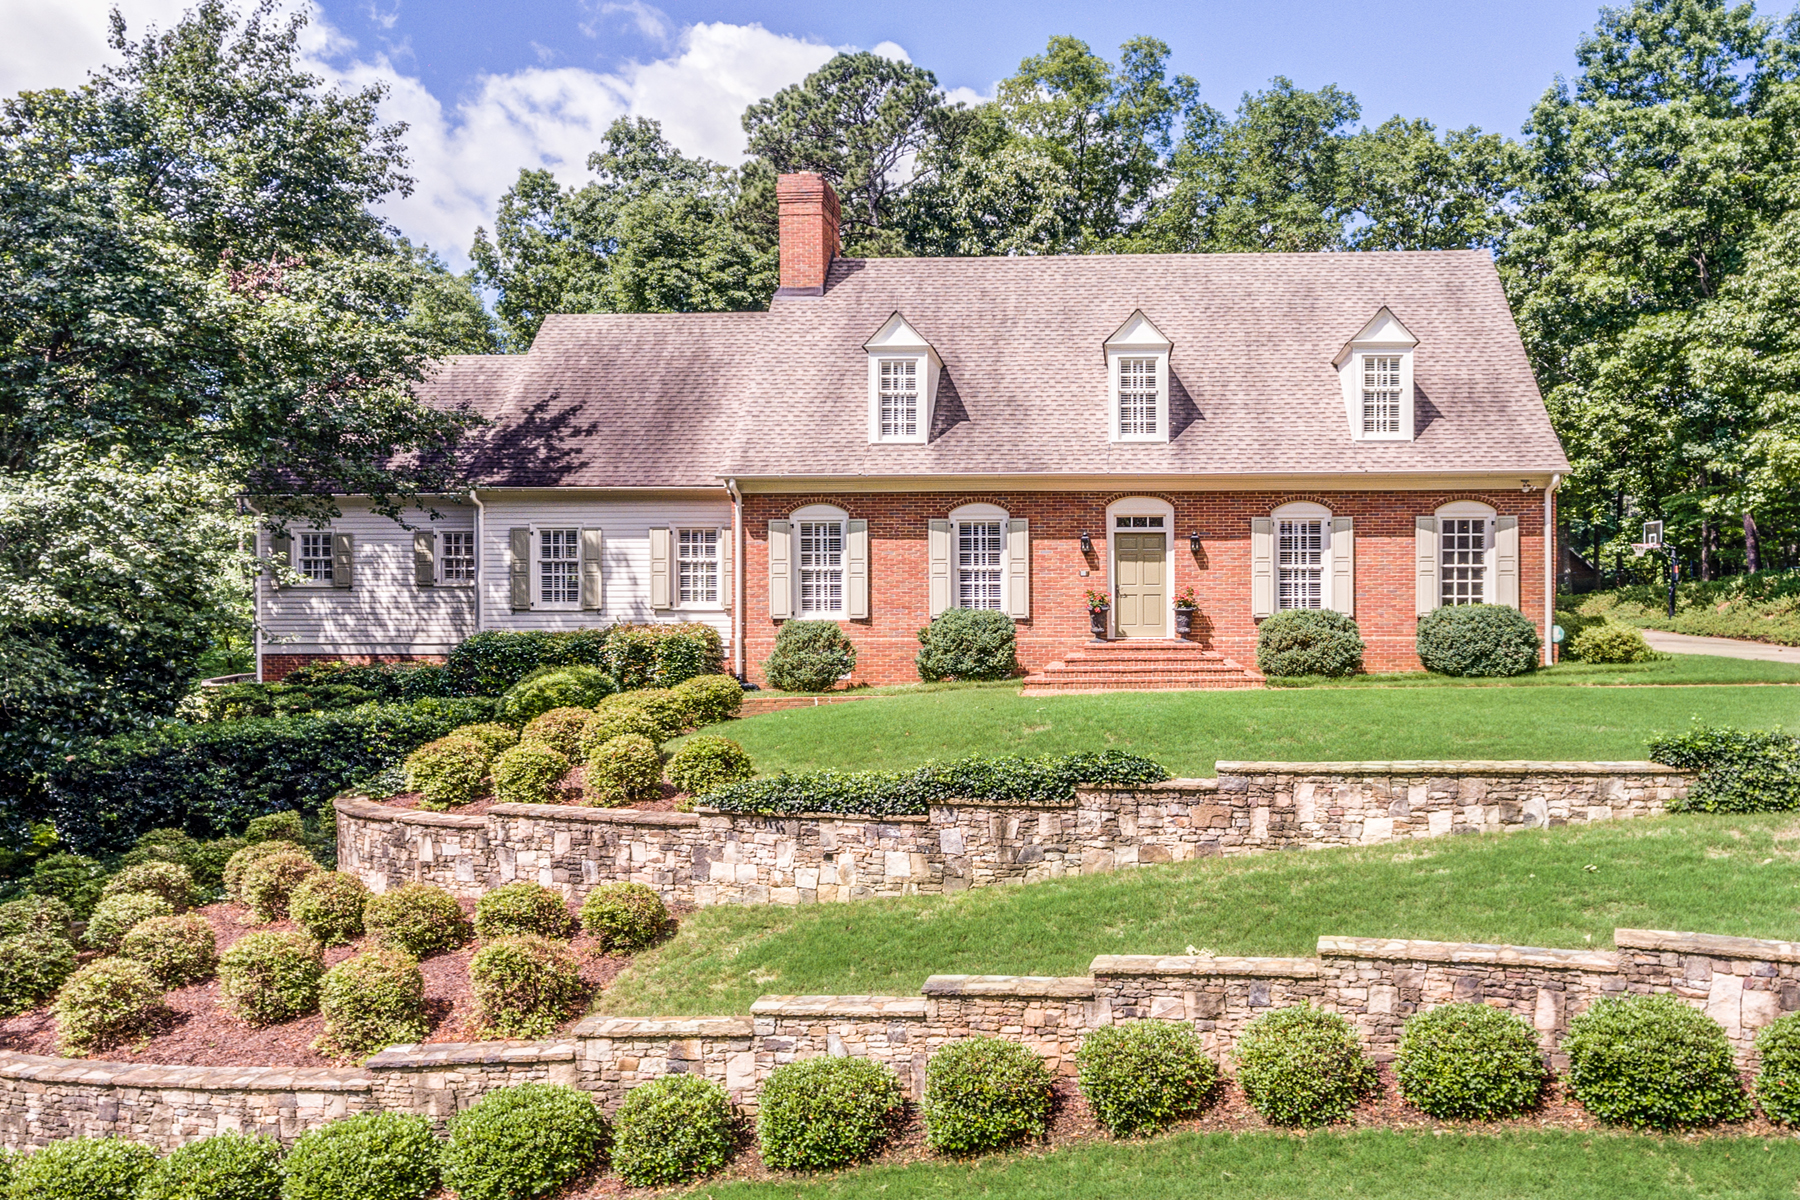 Villa per Vendita alle ore Beautifully Sited, Well Built And Maintained Home On Over An Acre 5300 Woodridge Forest Trail Sandy Springs, Georgia, 30327 Stati Uniti